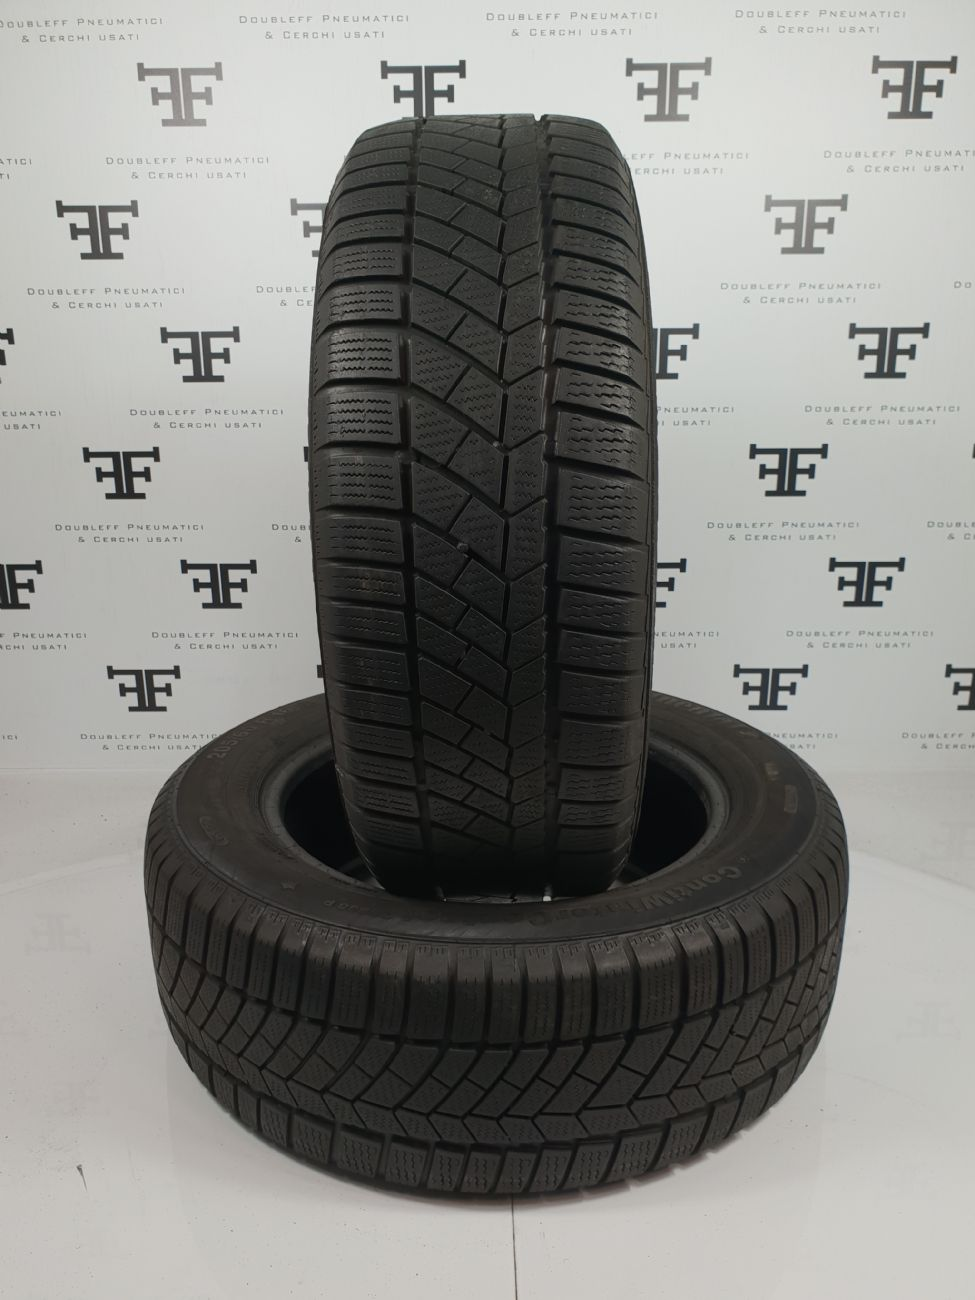 Pneumatici 205 55 R17 91 H CONTINENTAL ContiWINTERCONTACT TS830 P SSR invernale RUNFLAT usati 120€